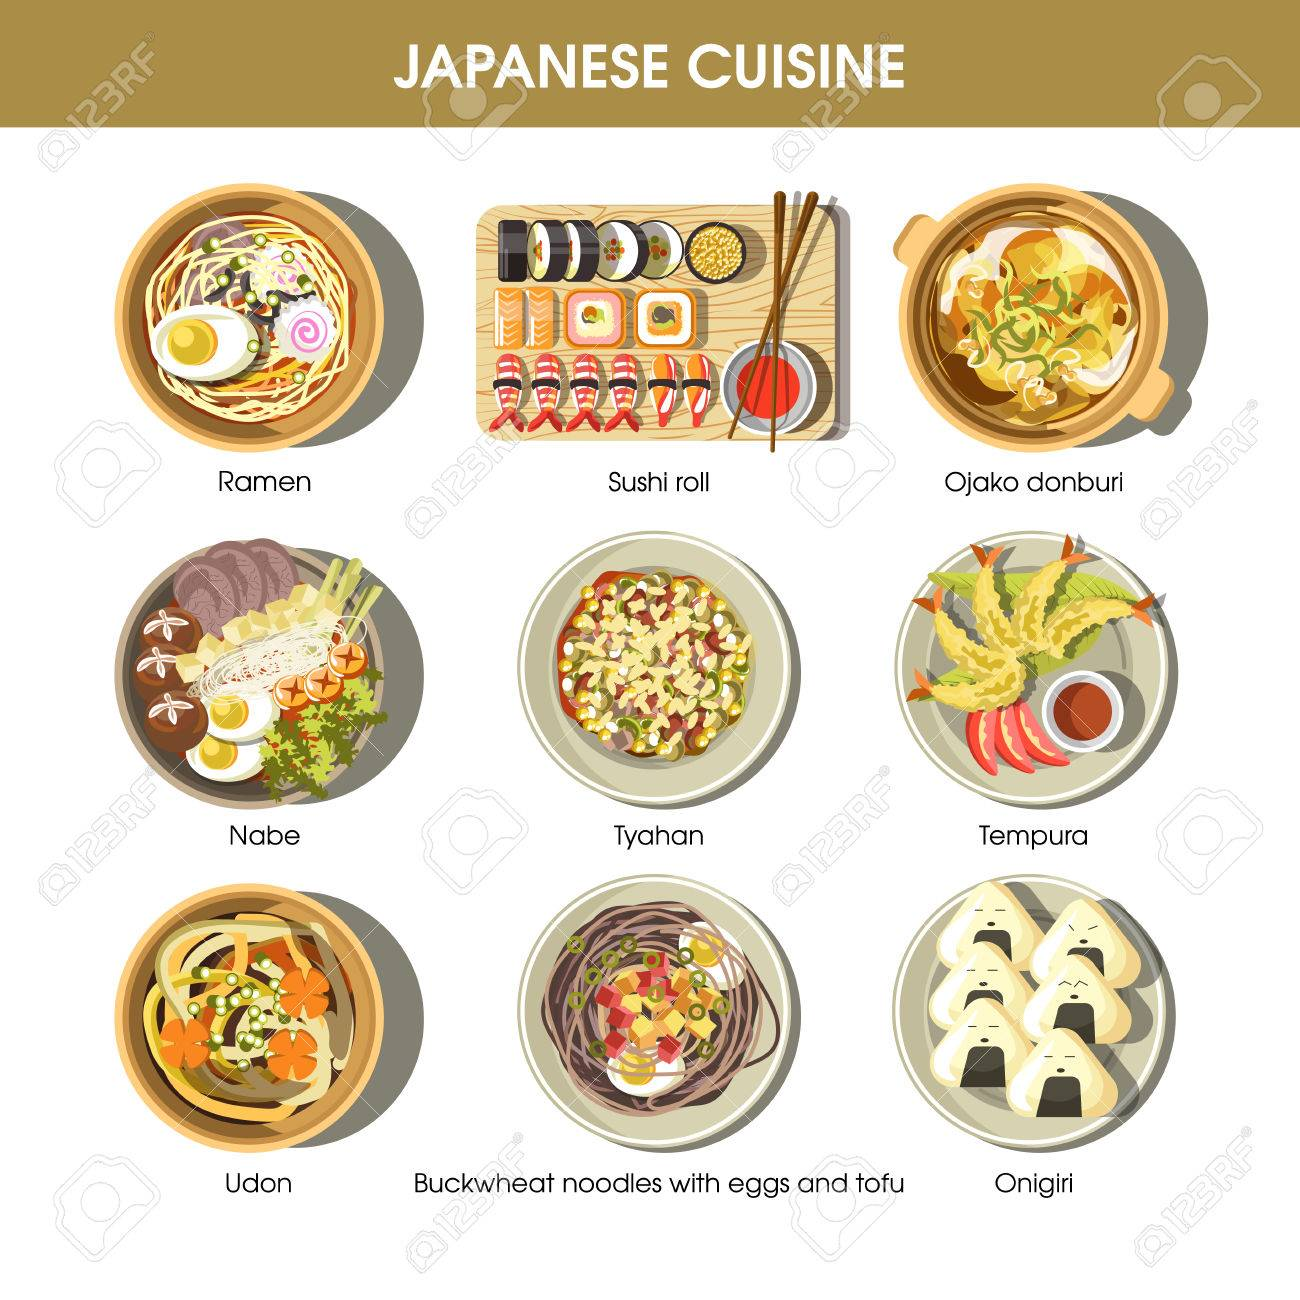 Japanese cuisine traditional dishes vector flat icons set - 73141997